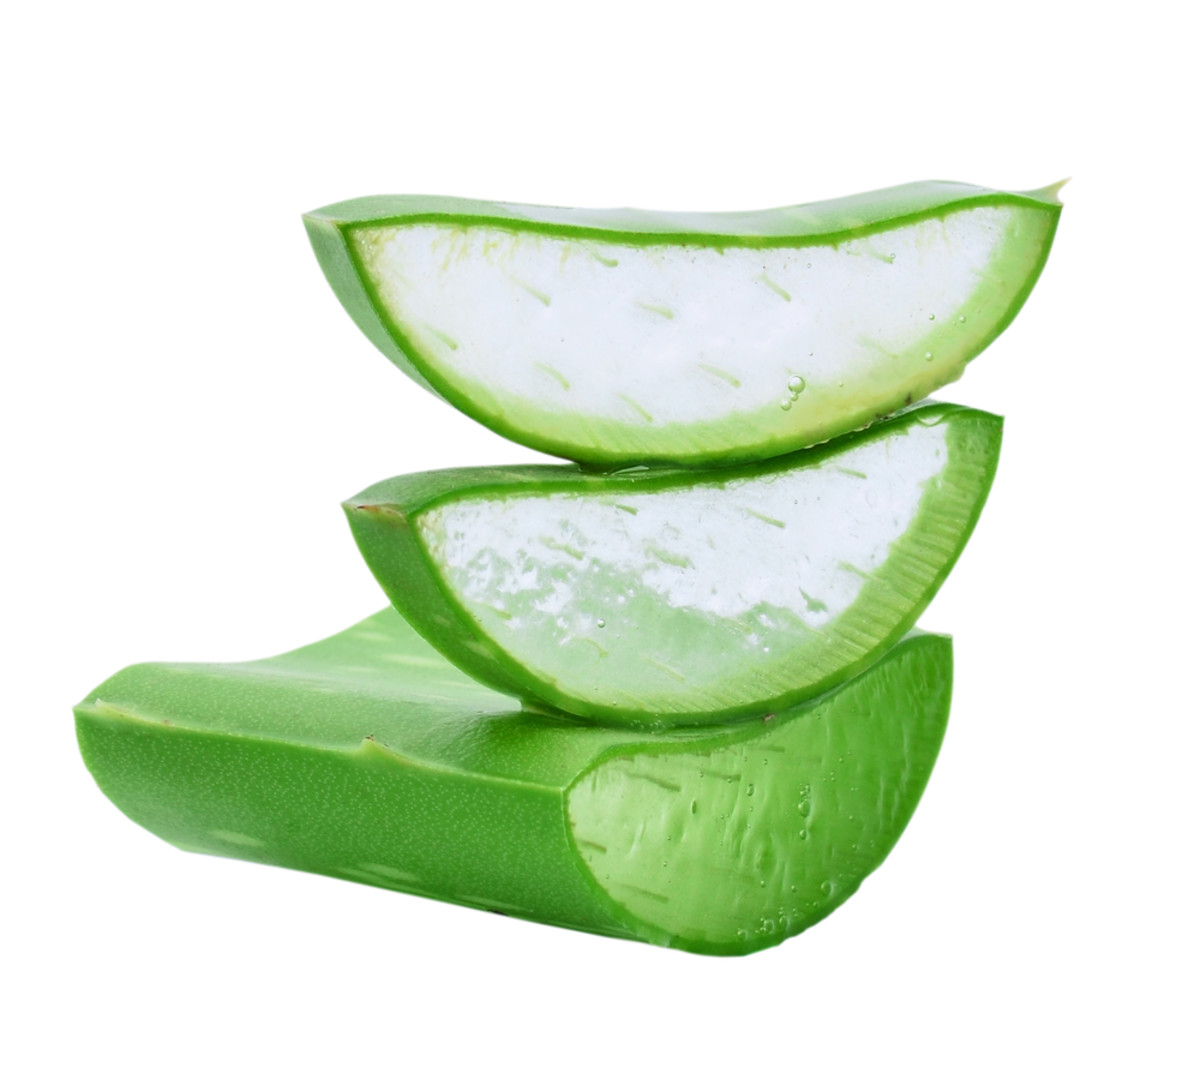 The anti-bacterial and astringent properties of Aloe Vera helps to keep the skin clear